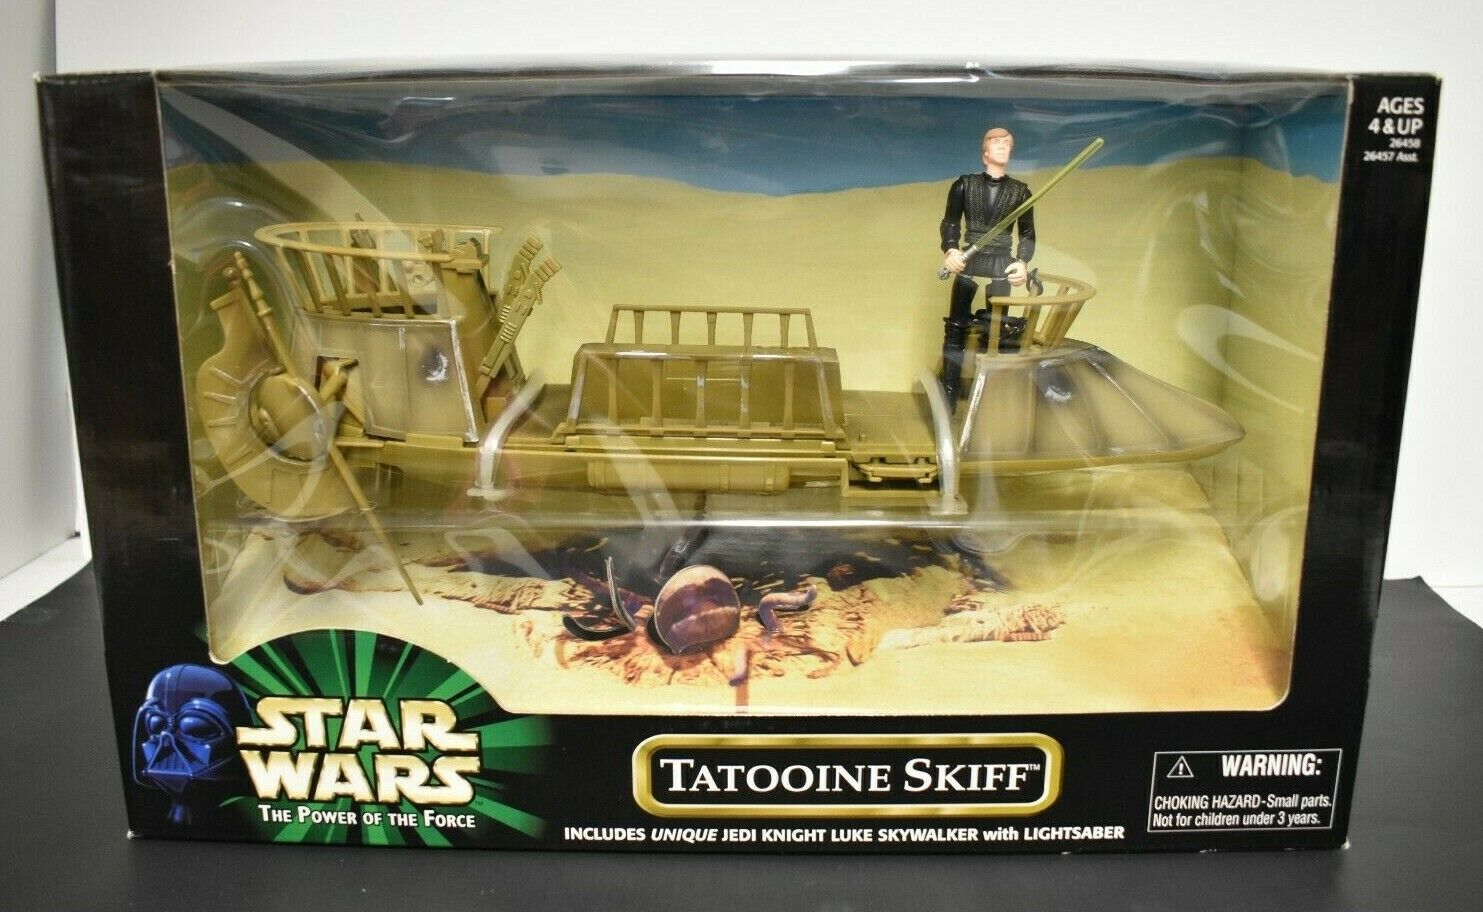 stjärnornas krig Power of the Force Tatooine Skiff 26458, förseglad Hasbro 1999